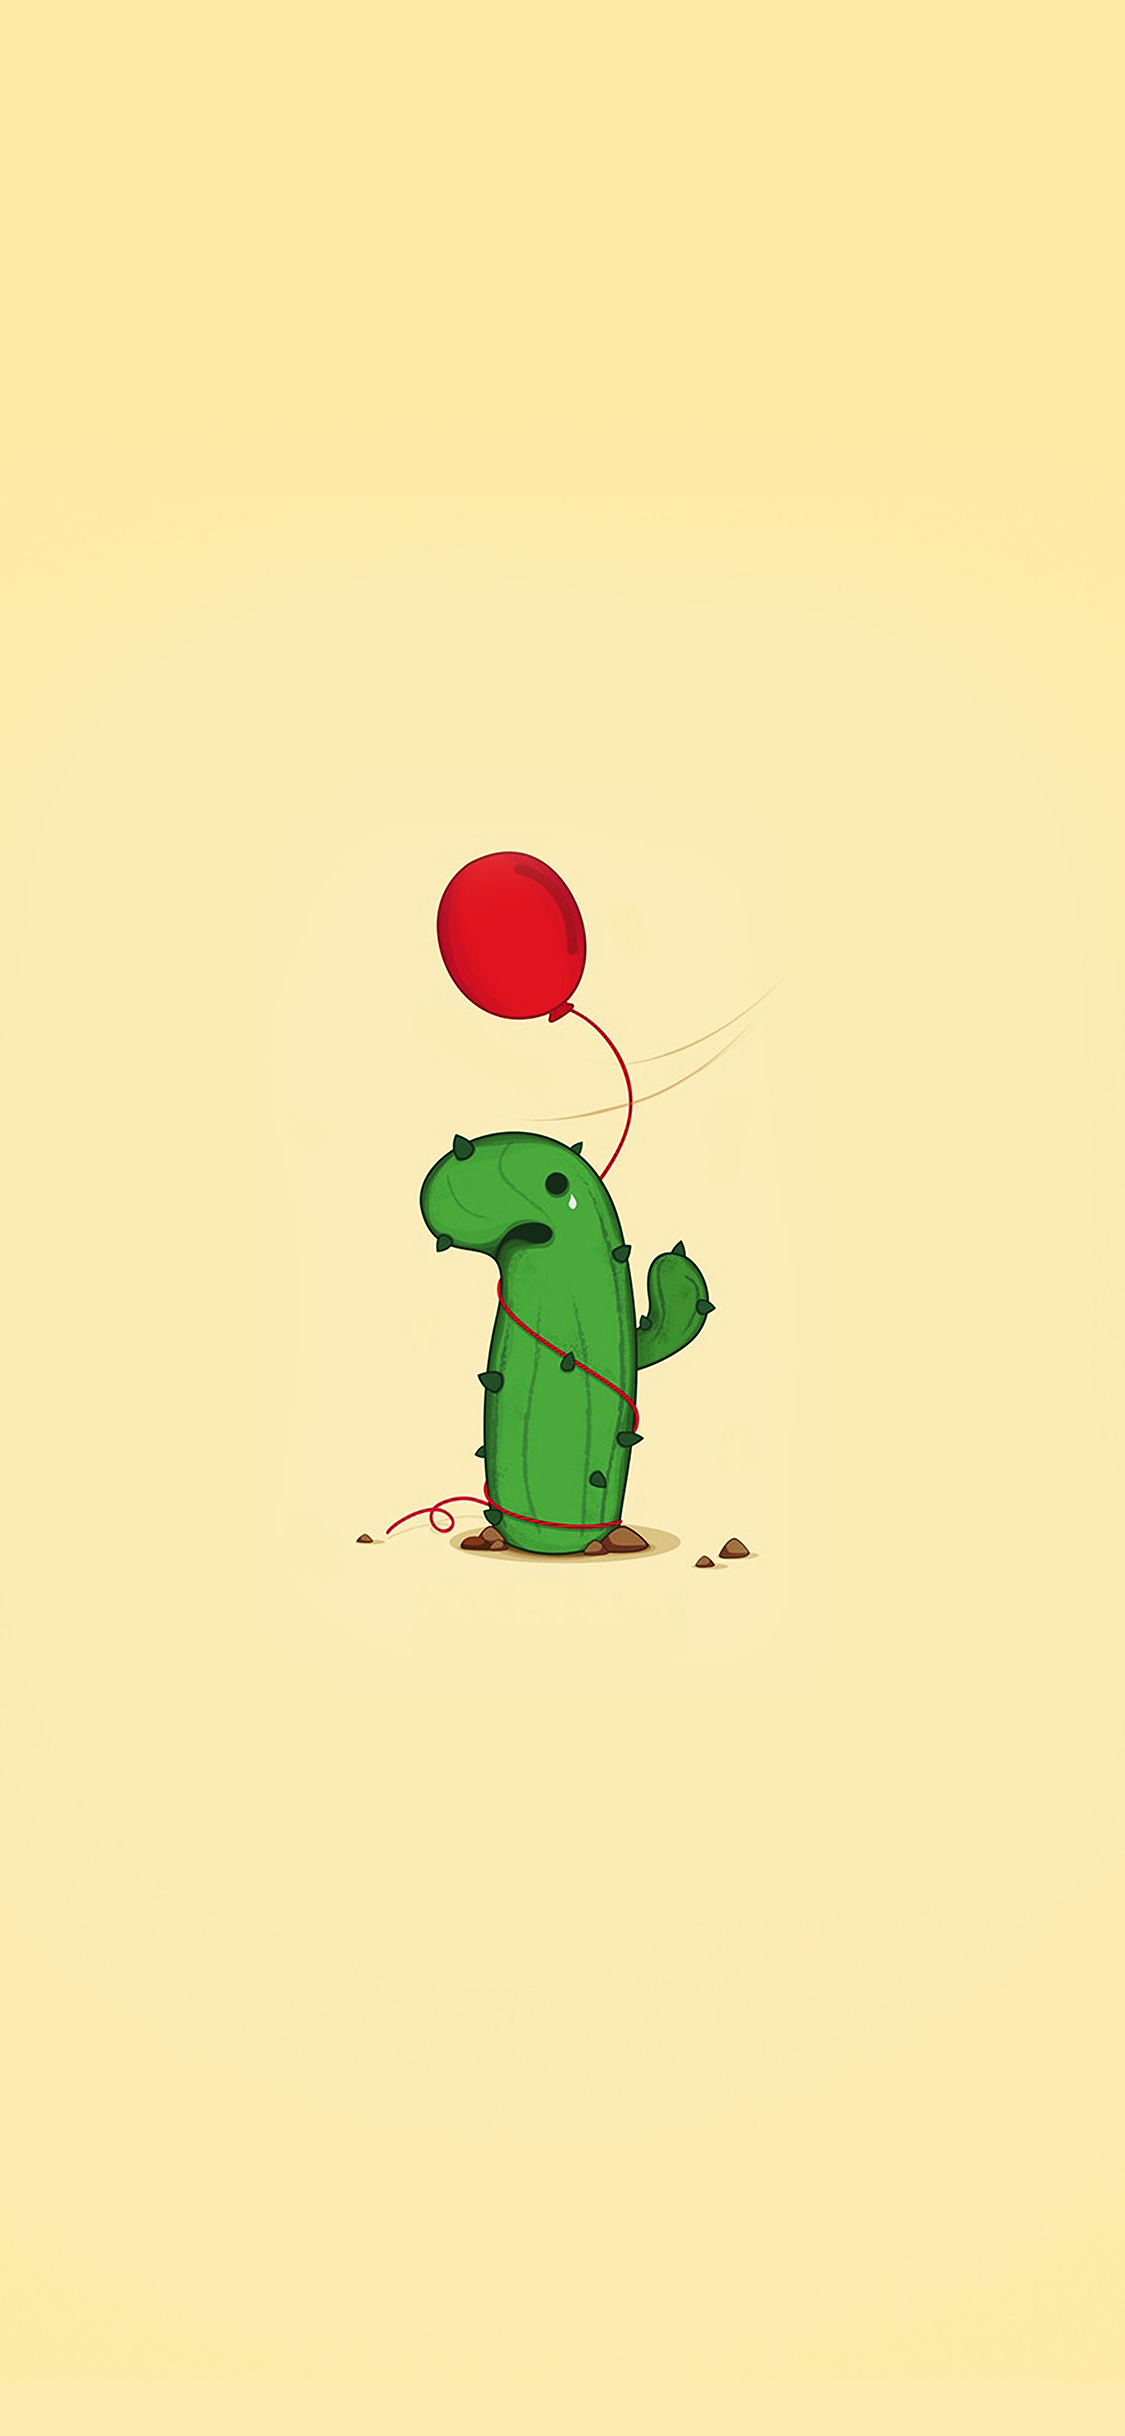 Superman Hd Wallpaper Ai35 Cute Cactus Ballon Illust Art Minimal Papers Co